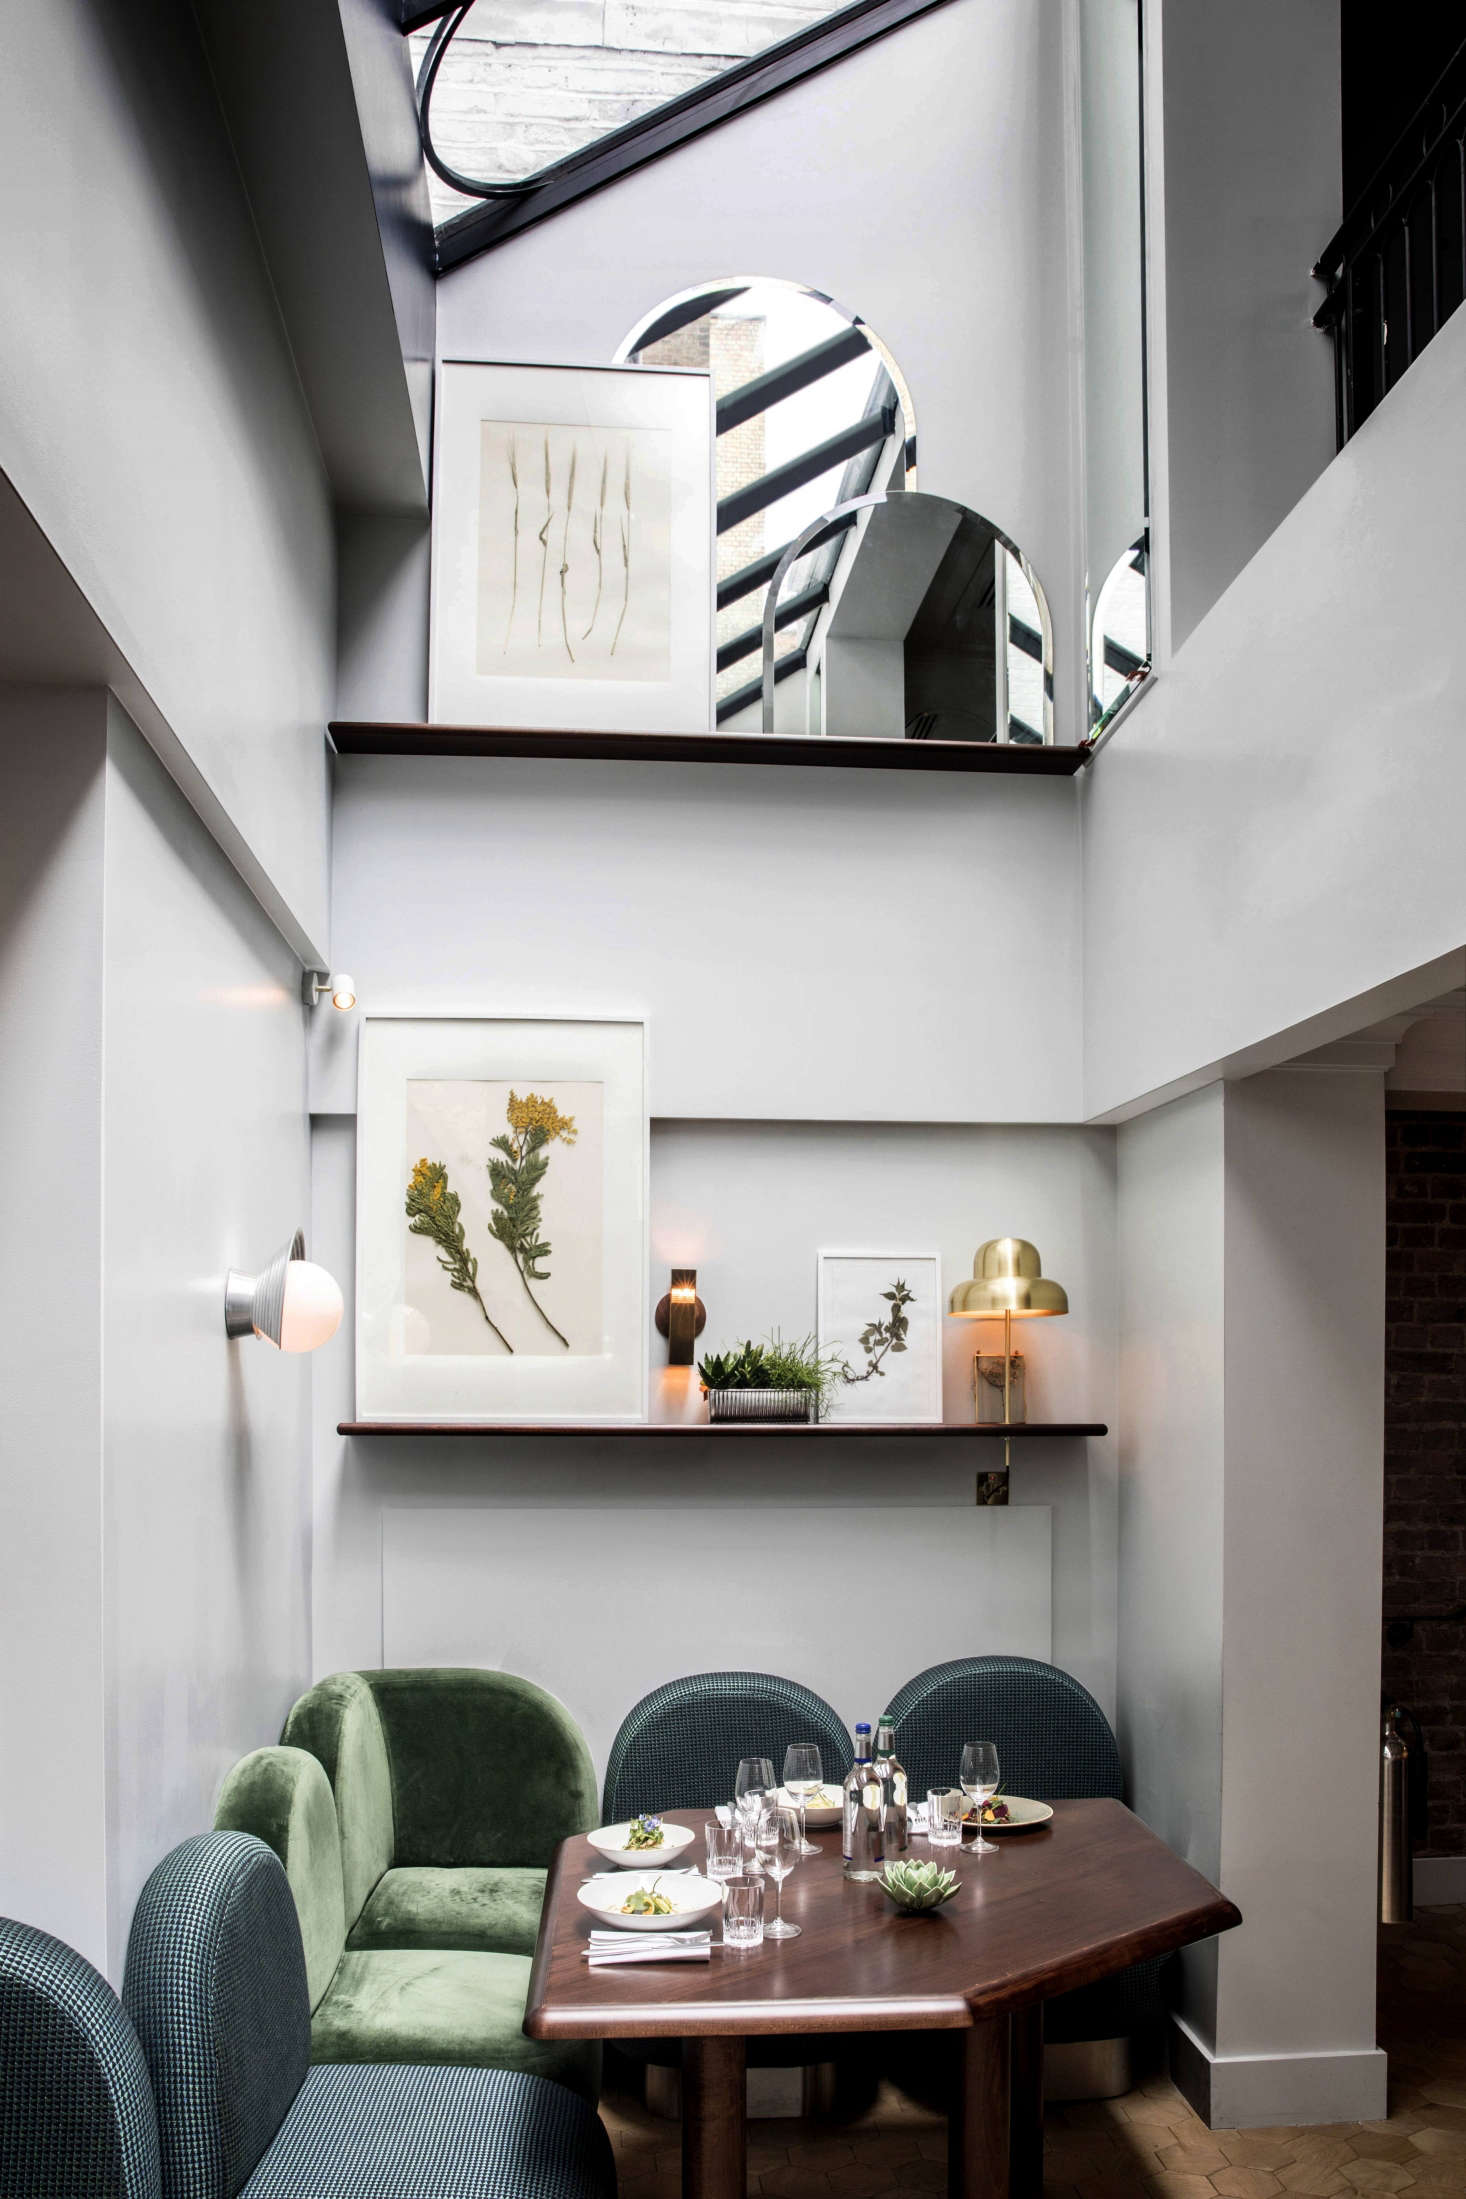 Framed, hand-pressed flora is almost geometric at A London Hotel with a Sense of Joie de Vivre. Photograph by Karel Balas.